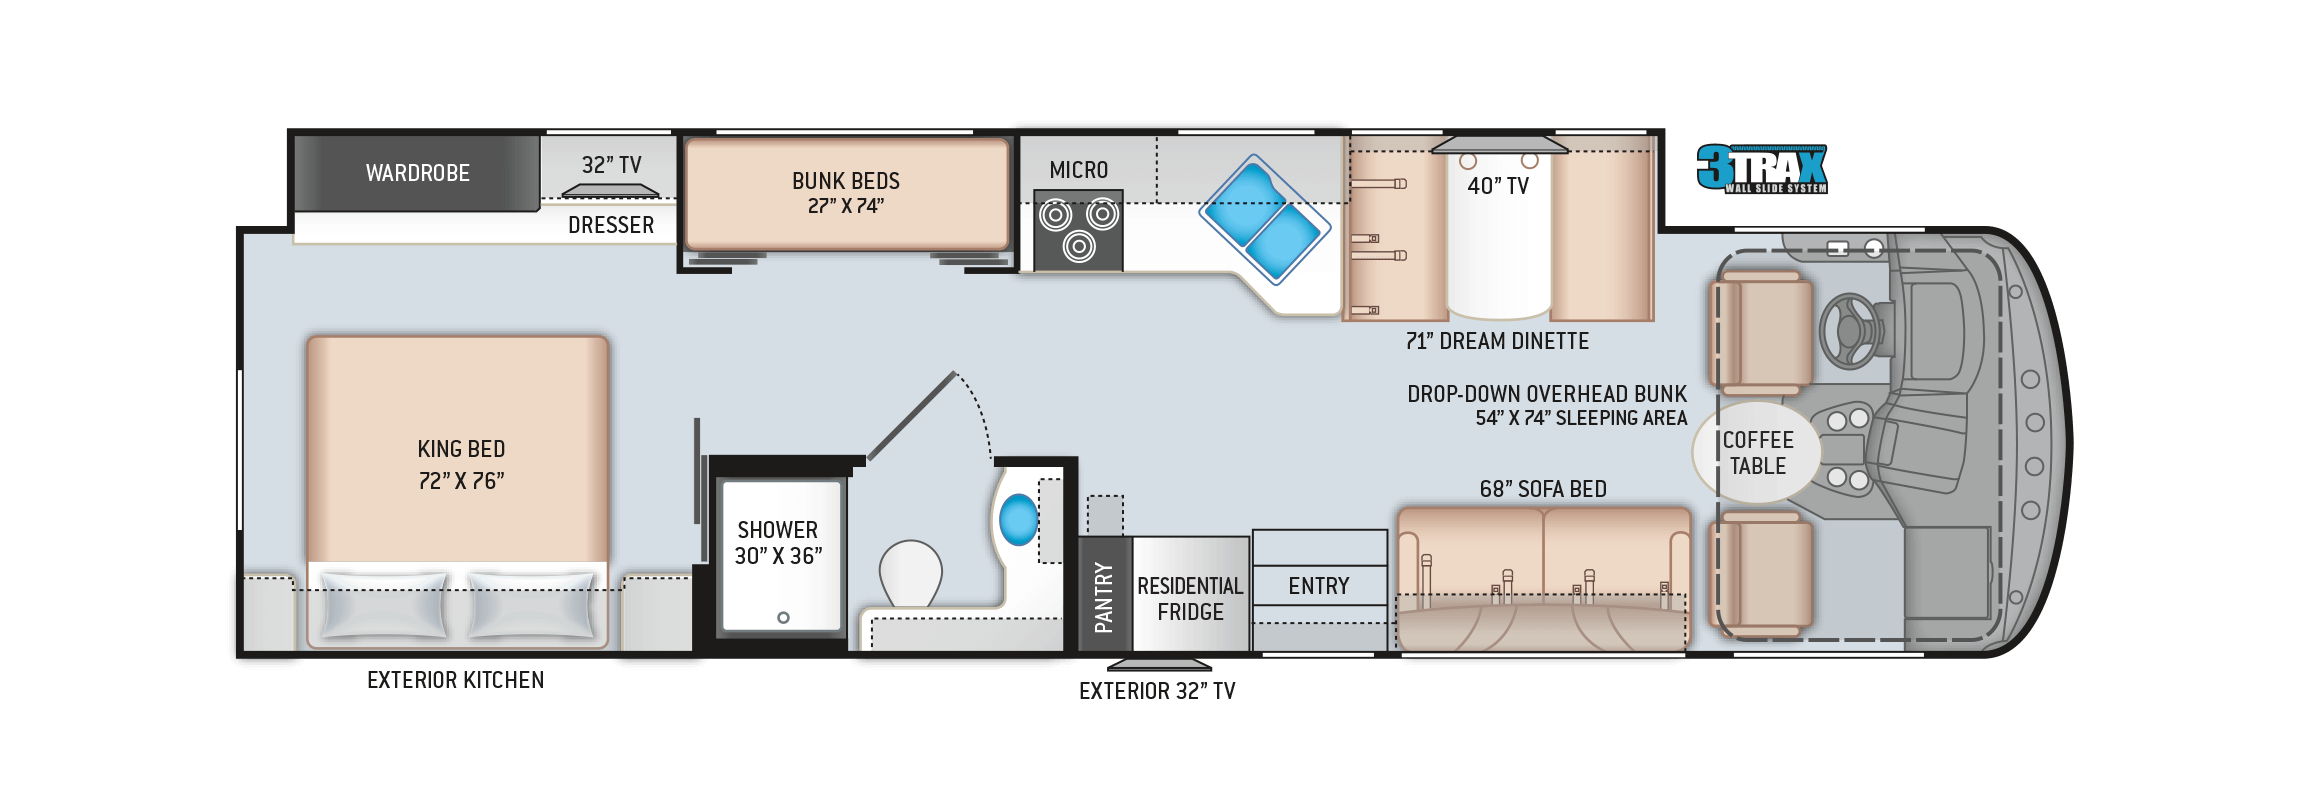 Windsport 34J Floor Plan